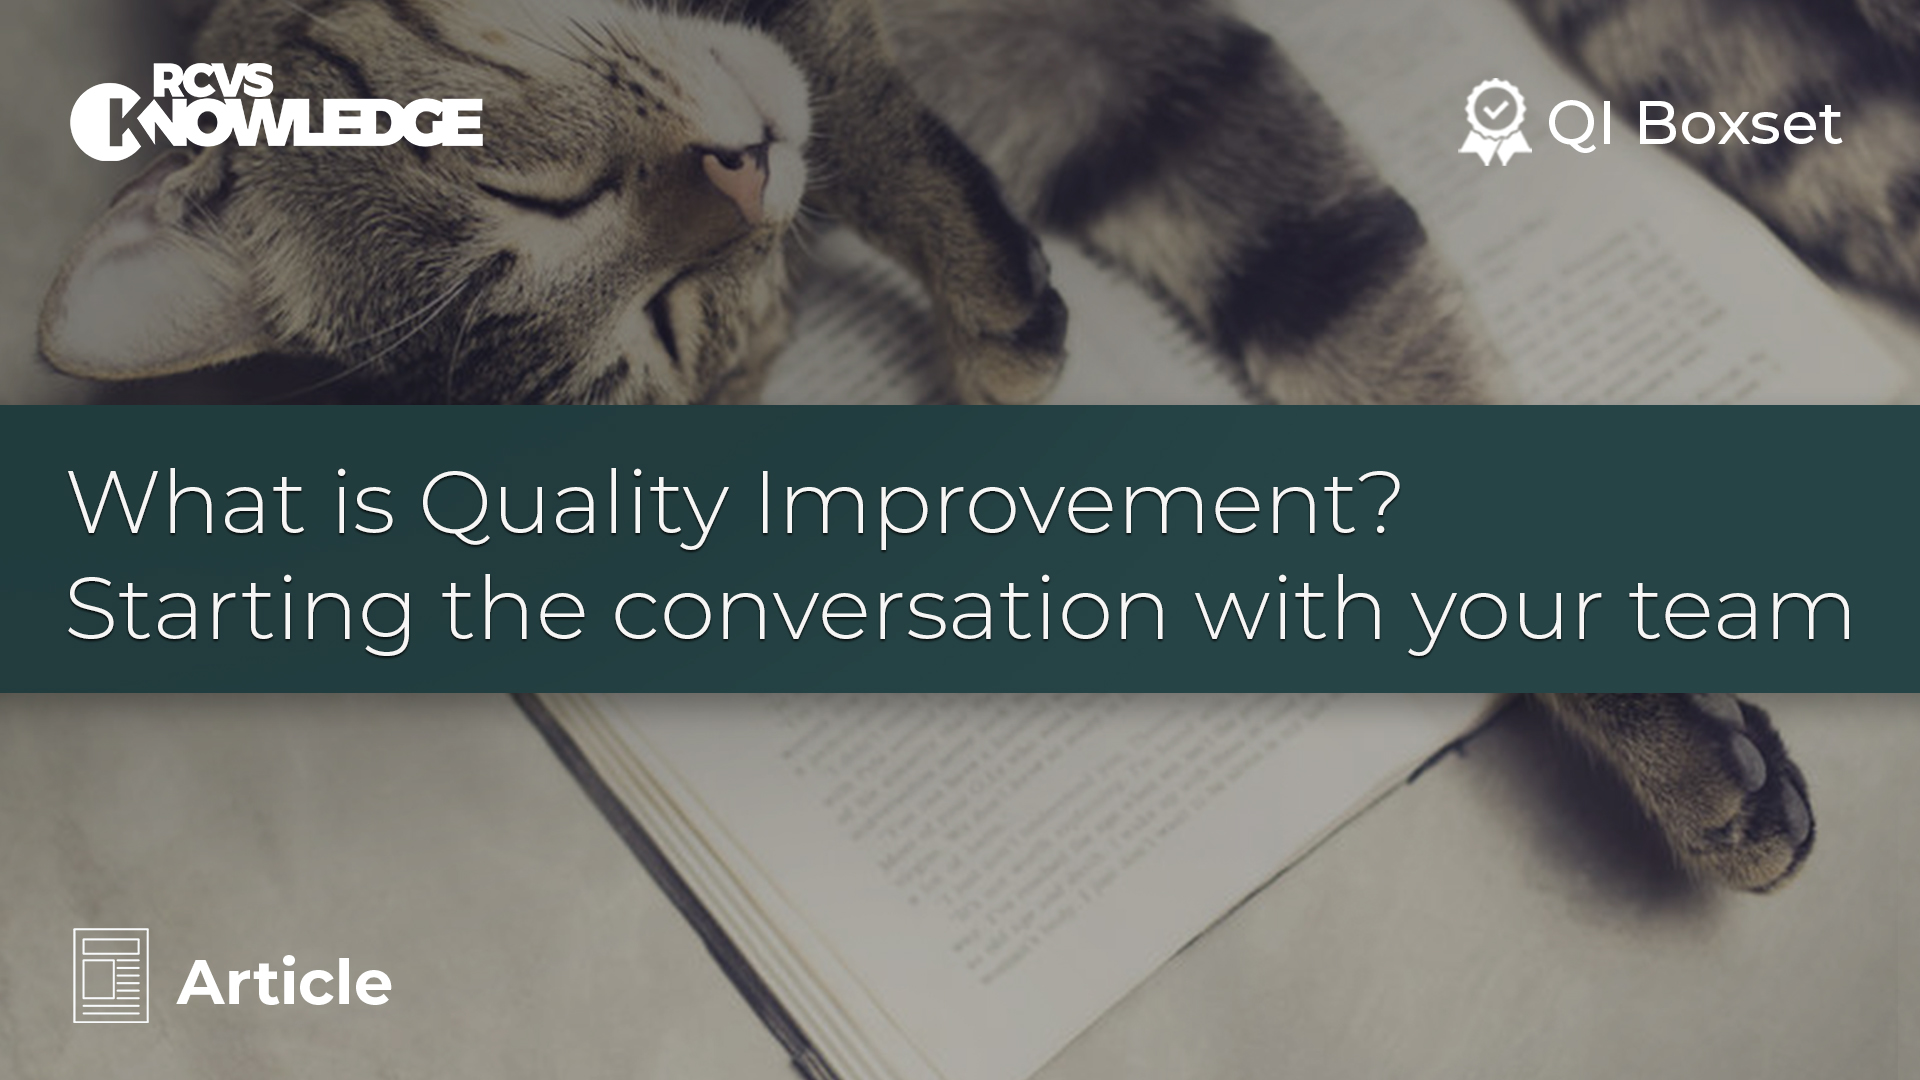 What is Quality Improvement? Starting the conversation with your team